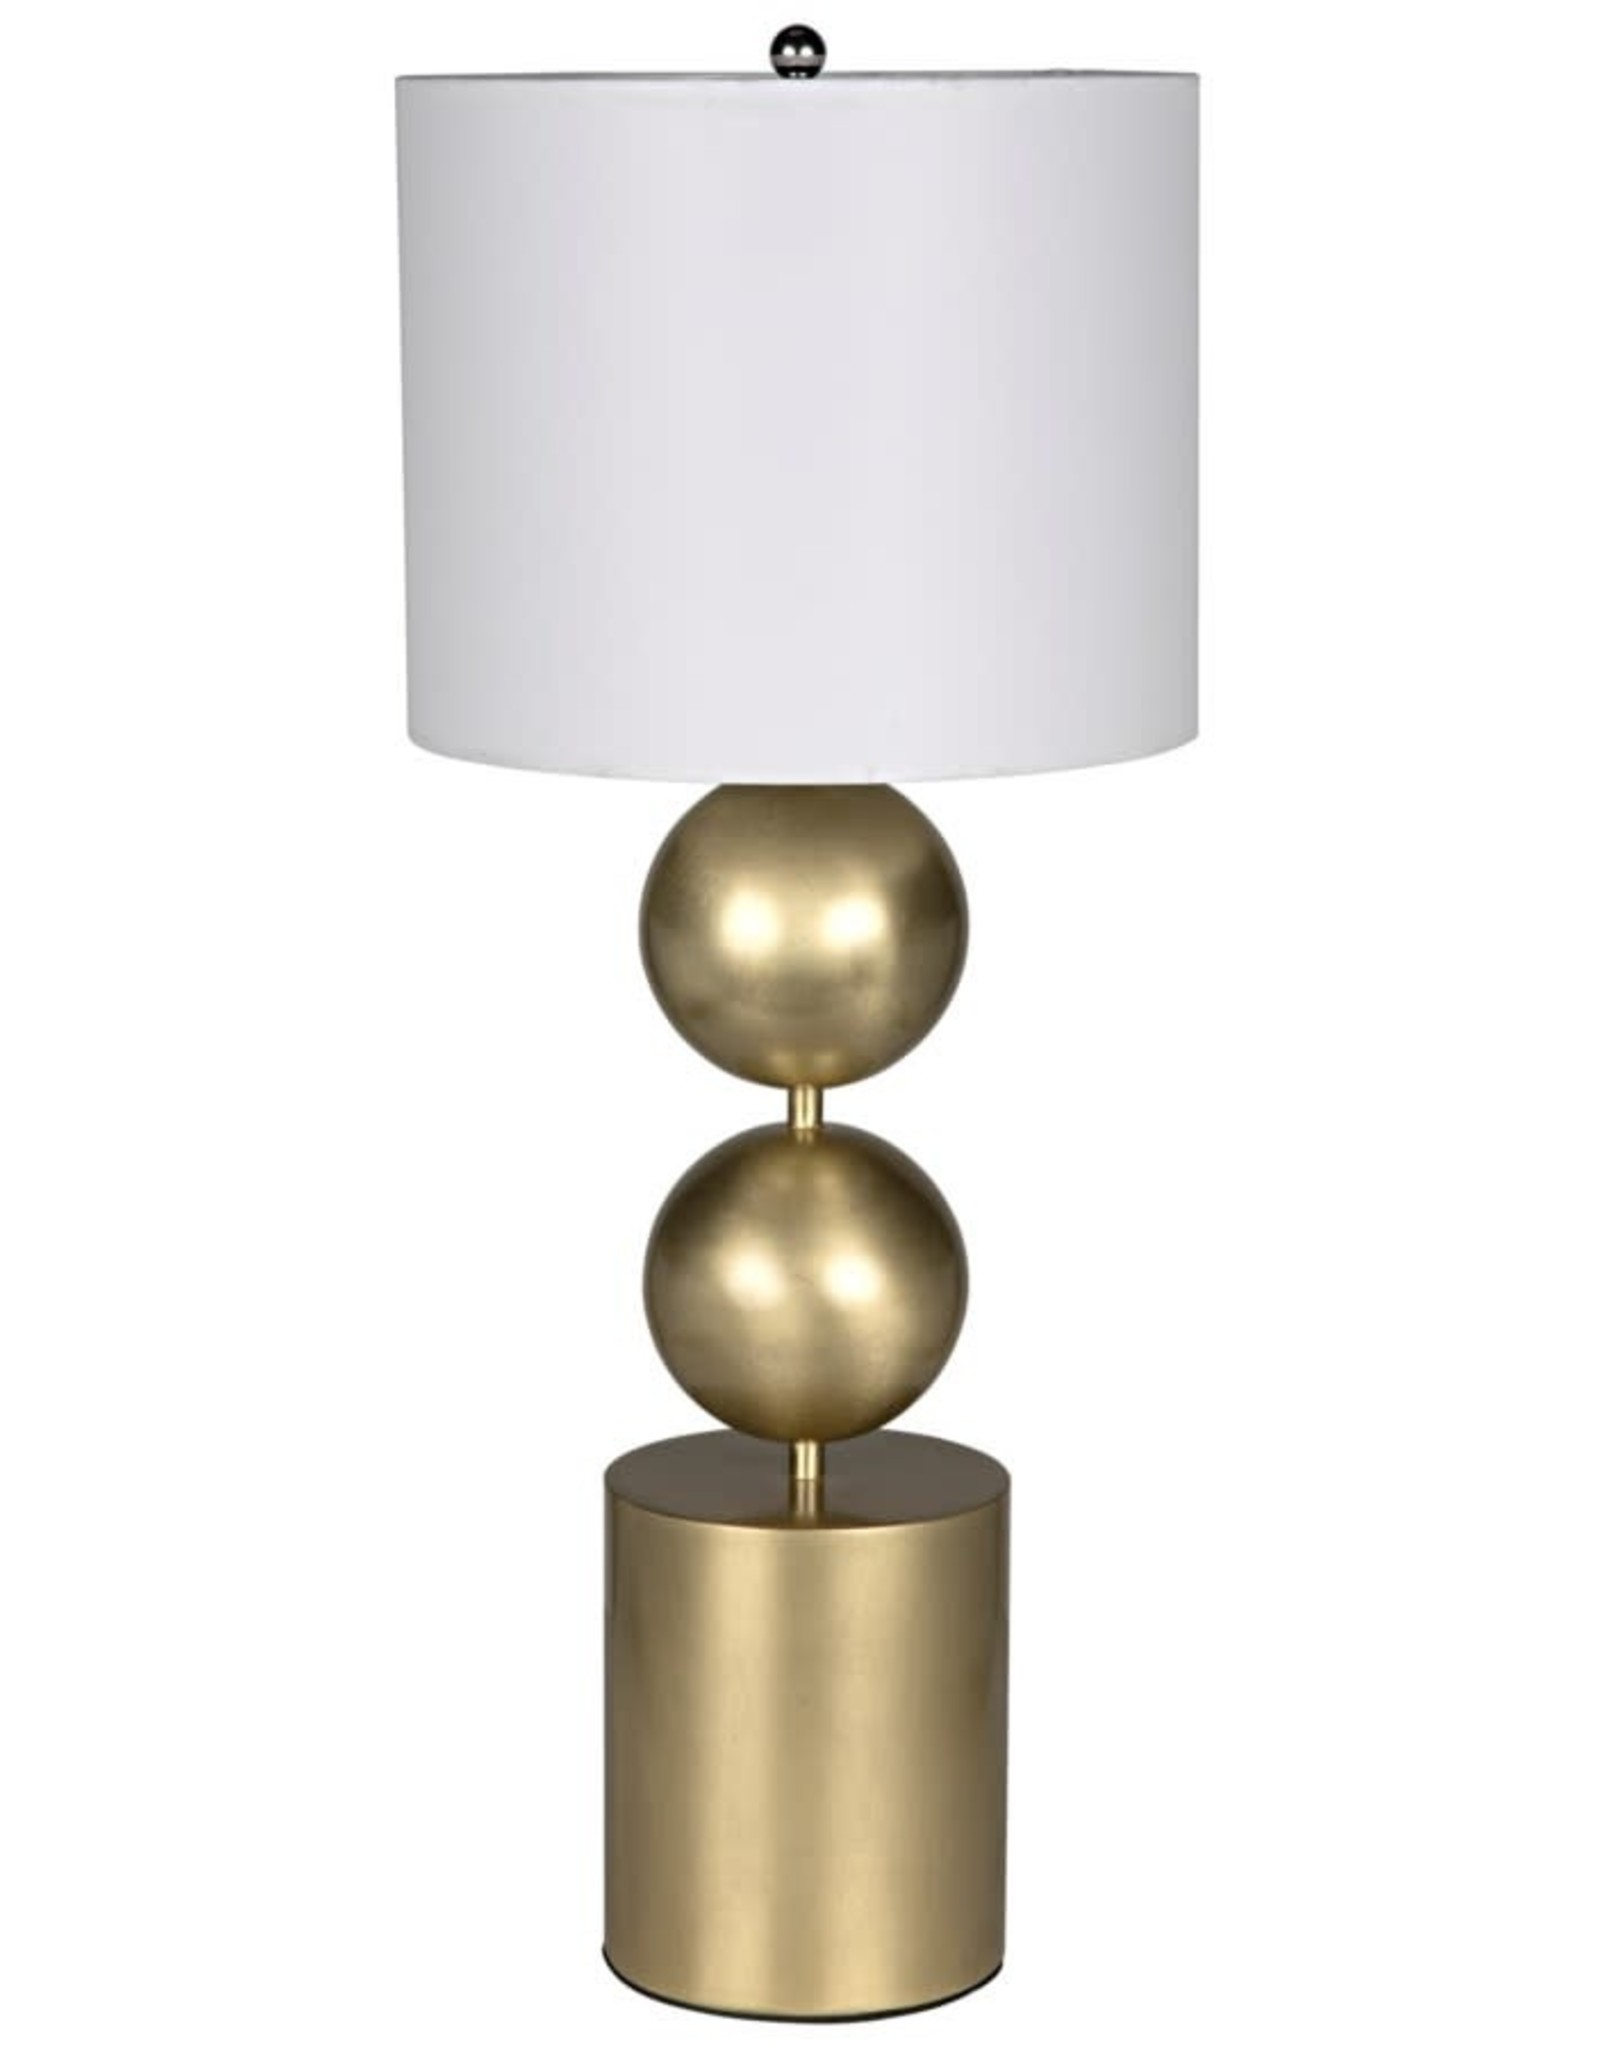 Website Tulum Table Lamp - Metal with Brass Finish